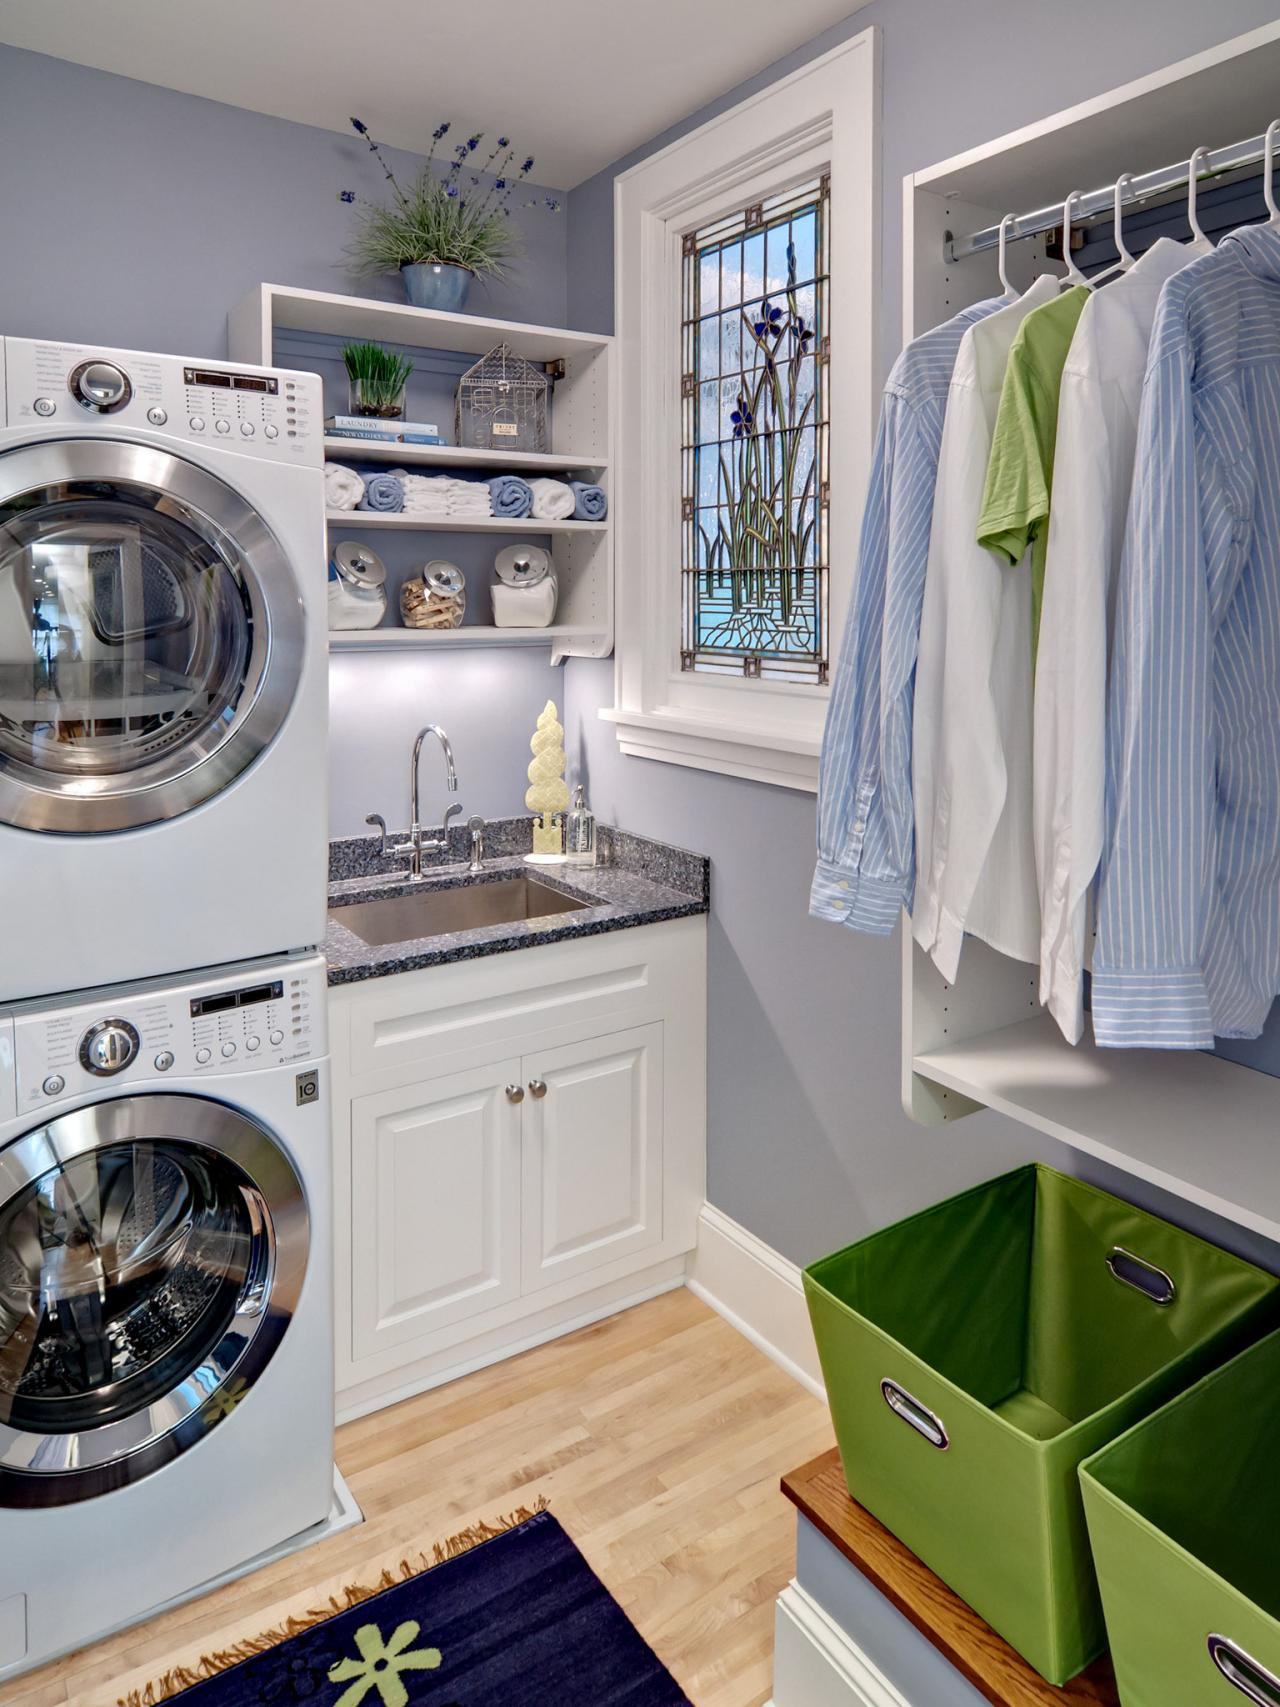 6 tips for storing laundry supplies hgtv - Laundry room design ideas ...